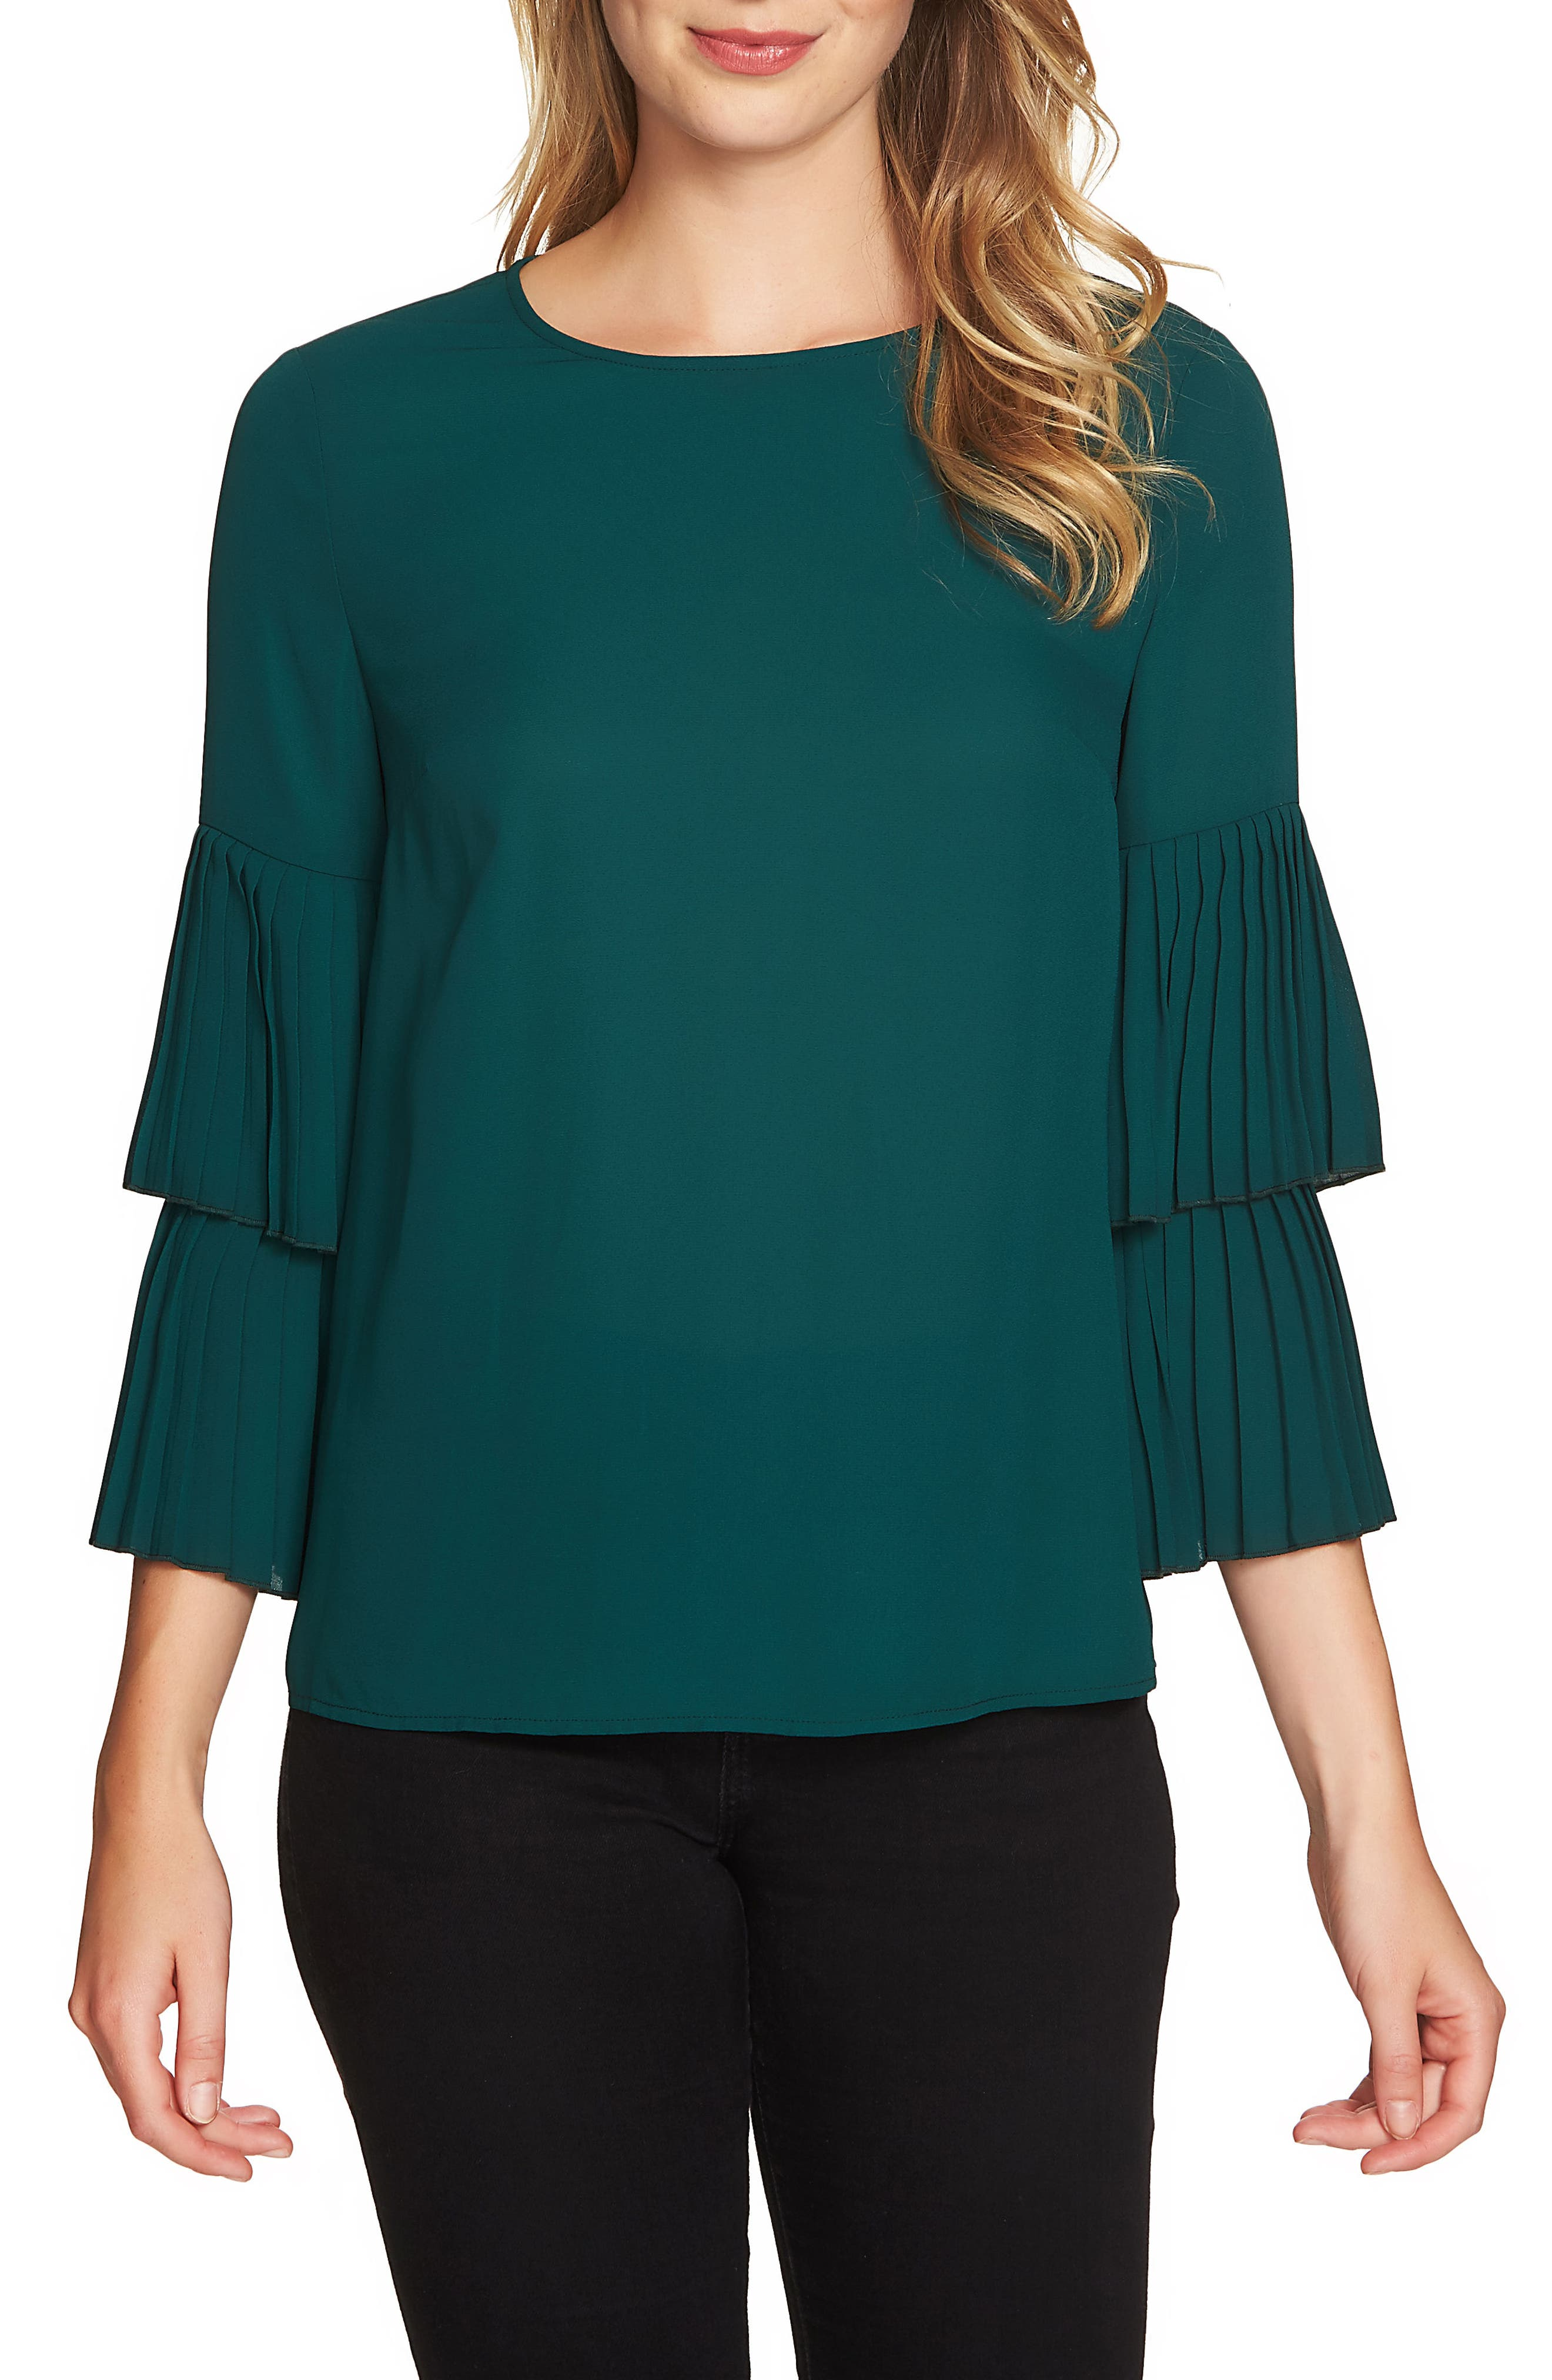 Main Image - 1.STATE Pleated Sleeve Blouse